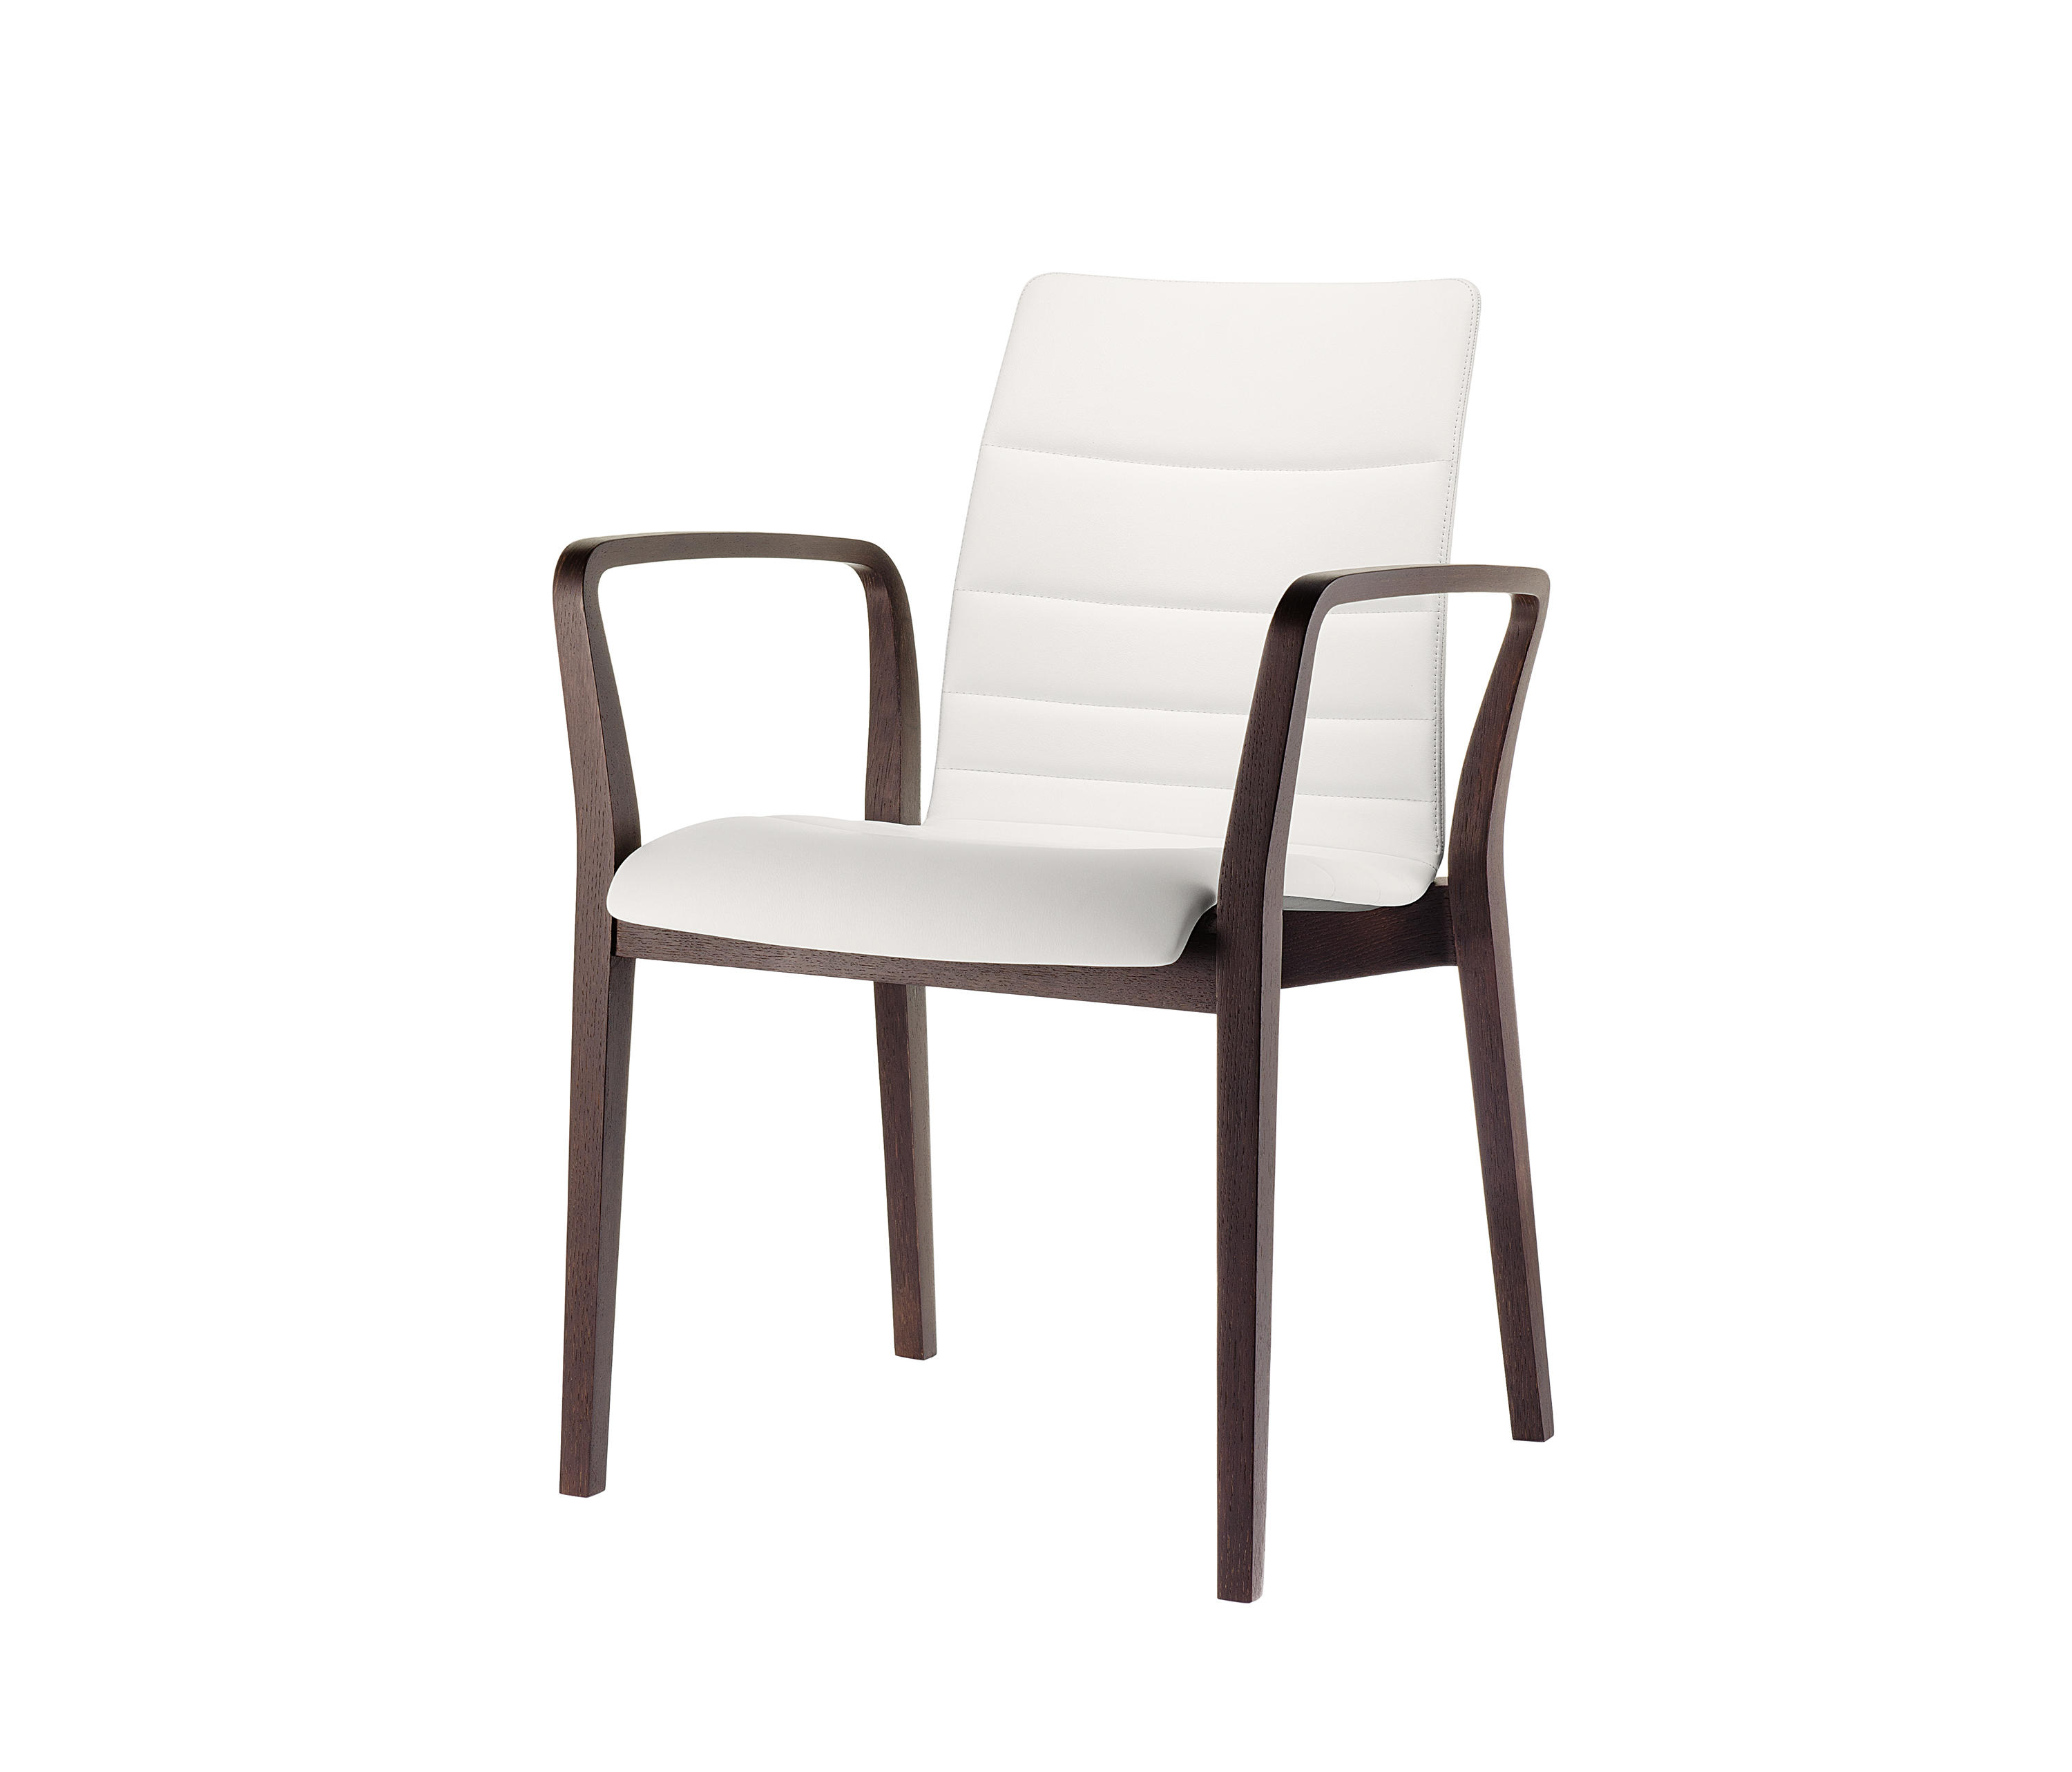 fina wood 6822 a restaurant chairs from brunner architonic. Black Bedroom Furniture Sets. Home Design Ideas